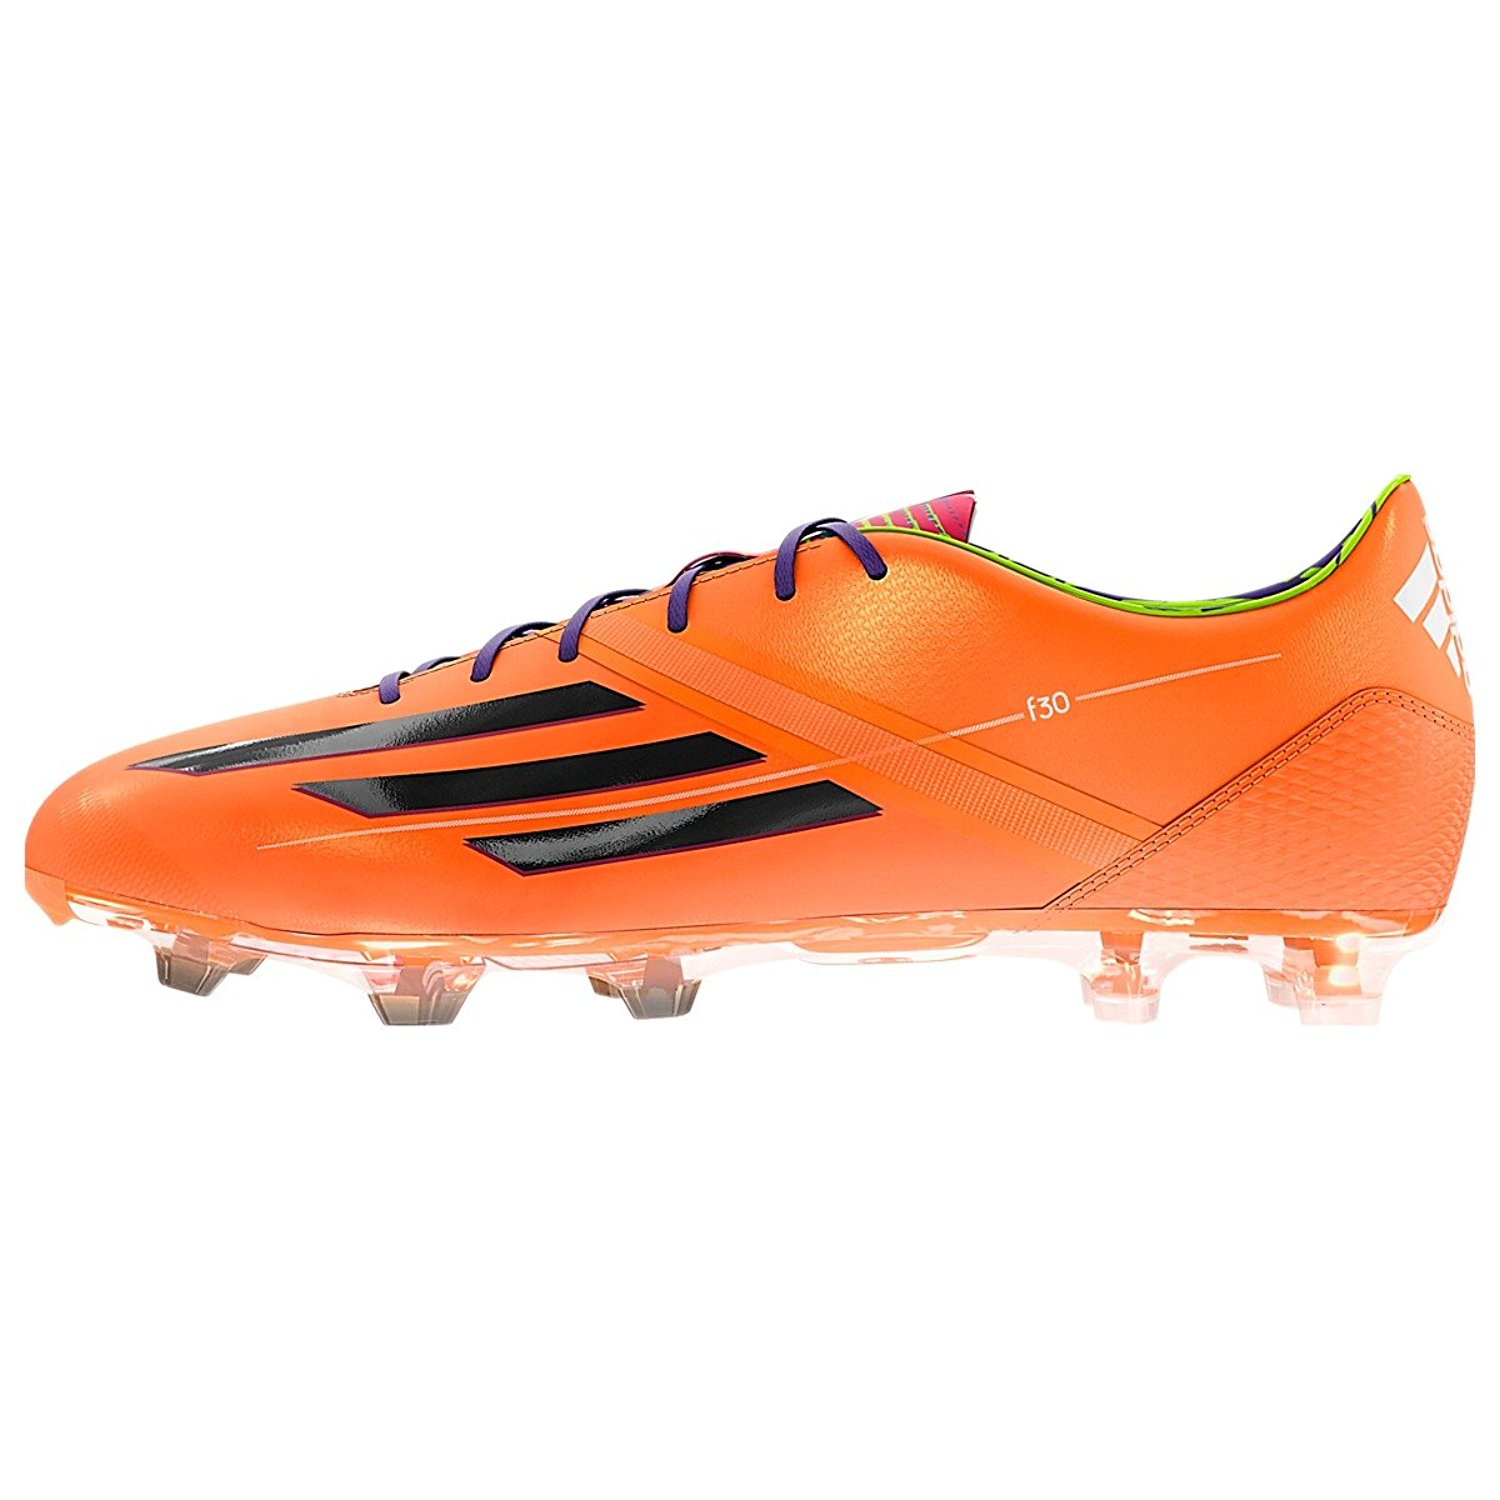 33c47d7d6 Get Quotations · Men s F30 Trx Fg Cleat Orange